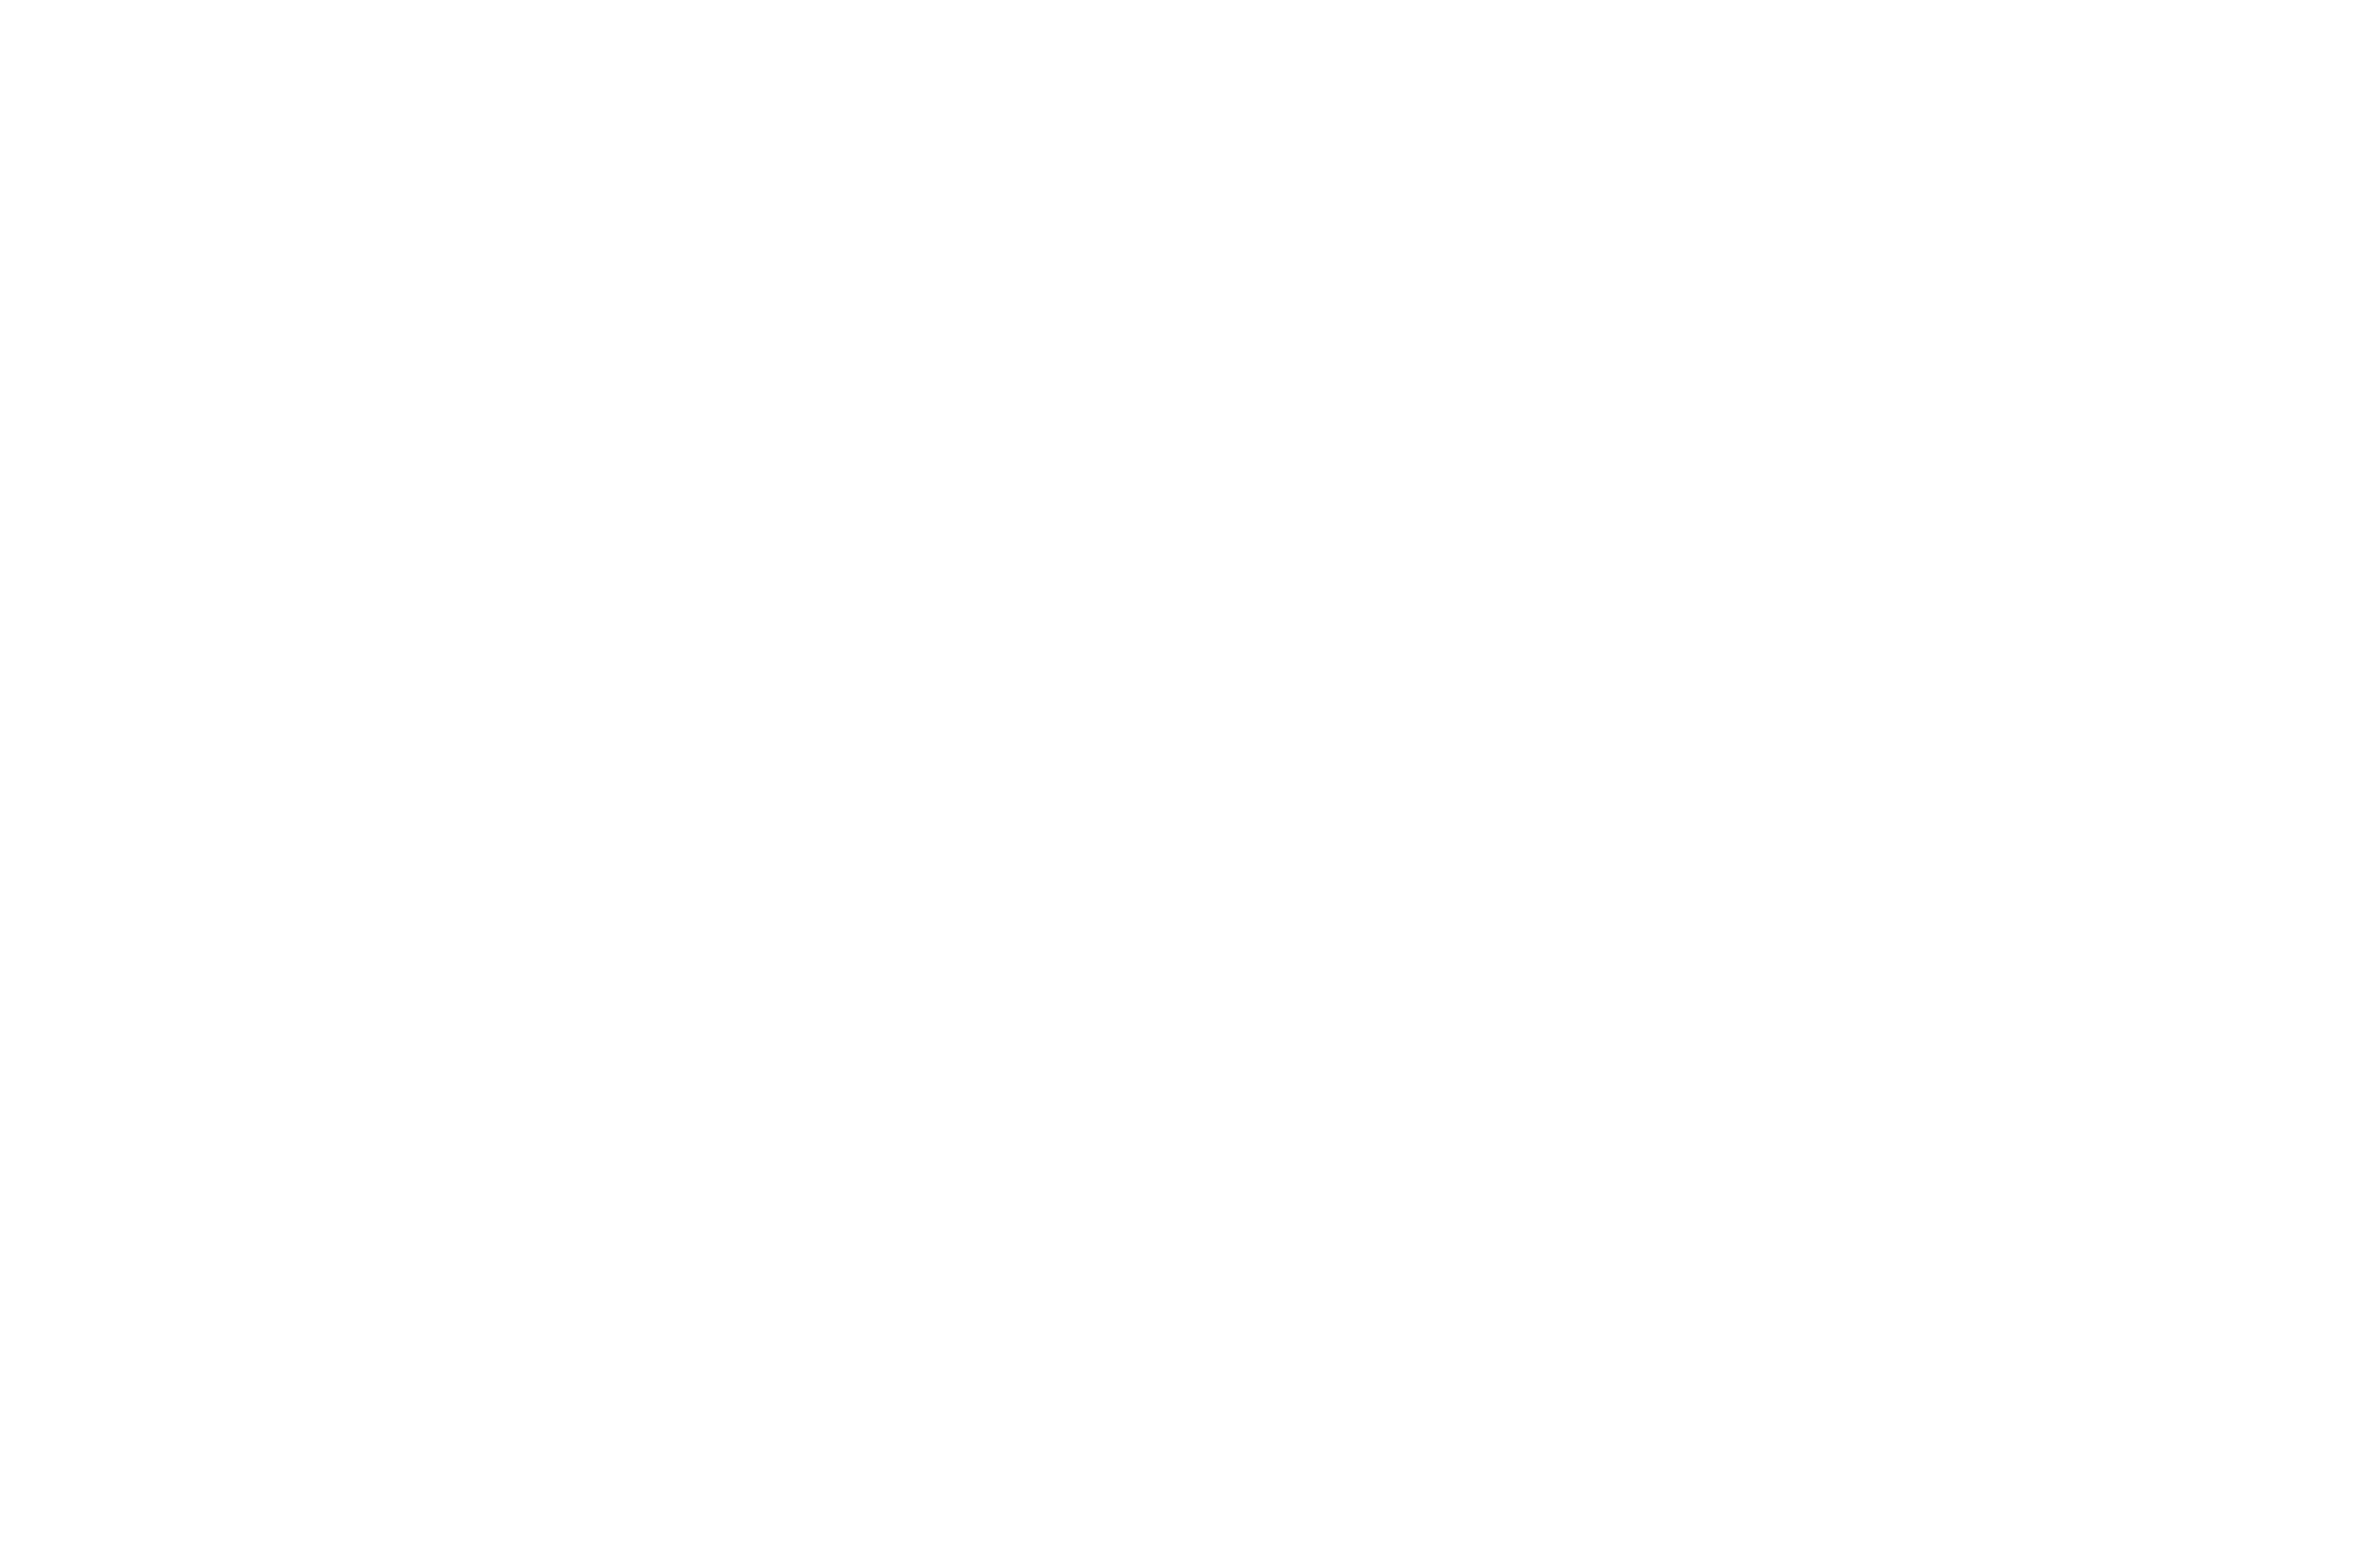 advance-the-cause-of-justice